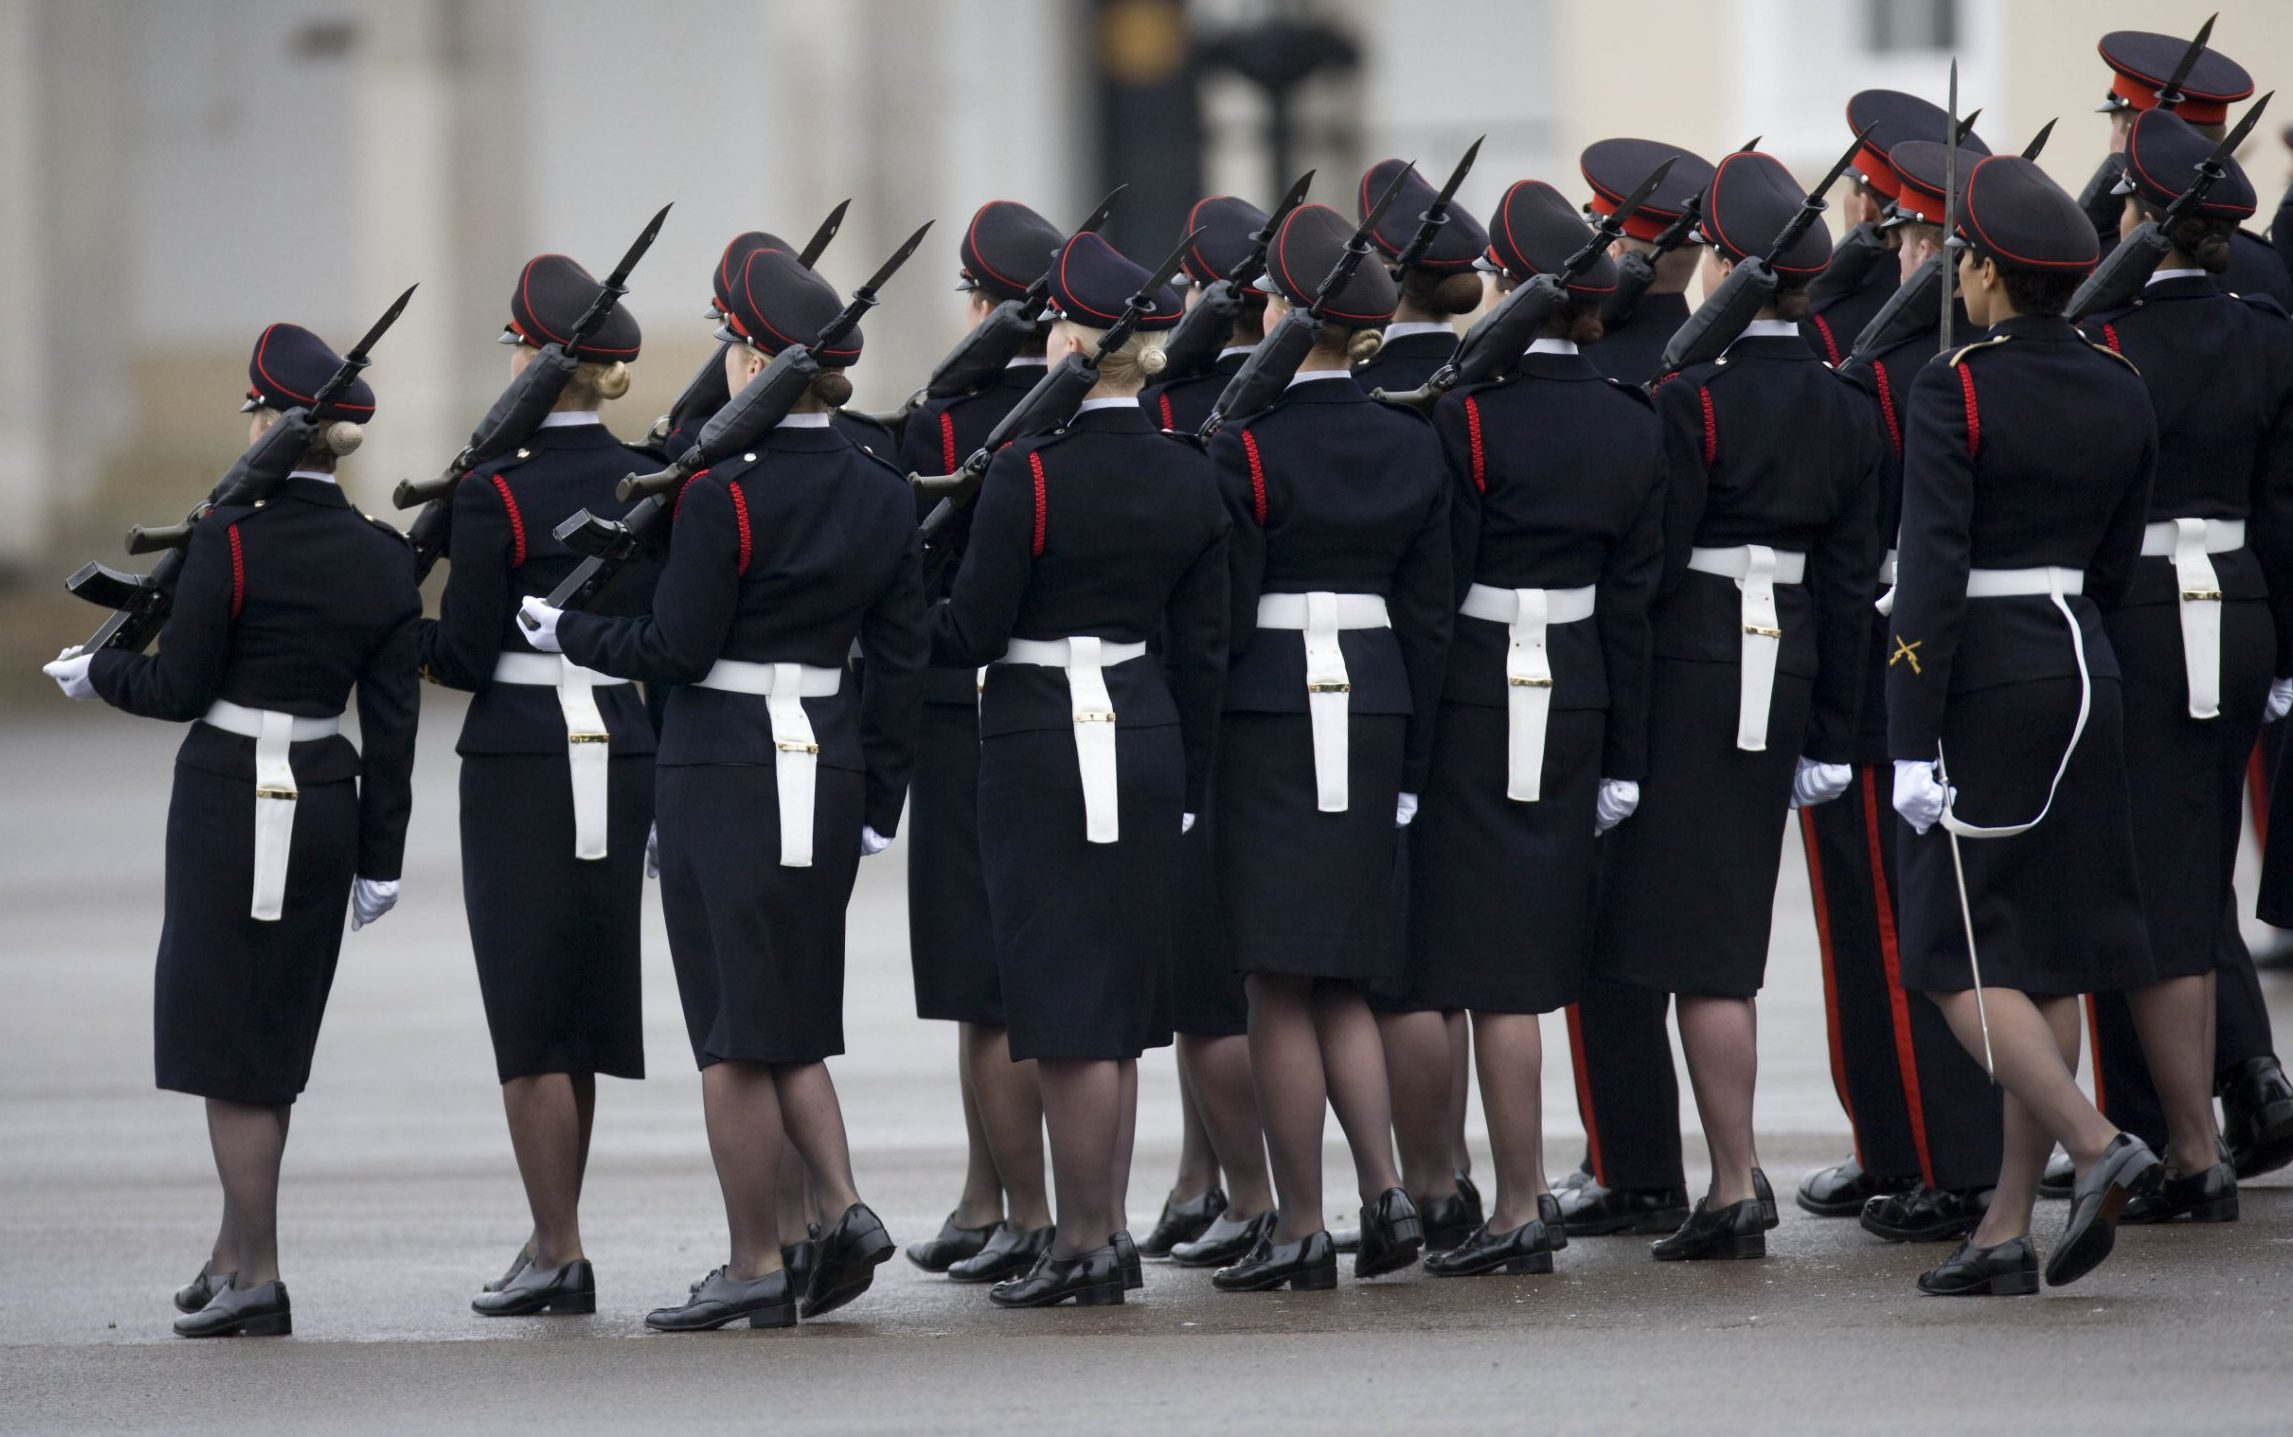 Mandatory Credit: Photo by David Hartley/REX/Shutterstock (903127d) Officer cadets on parade The Sovereign's Parade,The Royal Military Academy, Sandhurst, Berkshire, Britain - 09 Apr 2009 Officer cadets take part in the passing out graduation parade at The Royal Military Academy in Sandhurst.